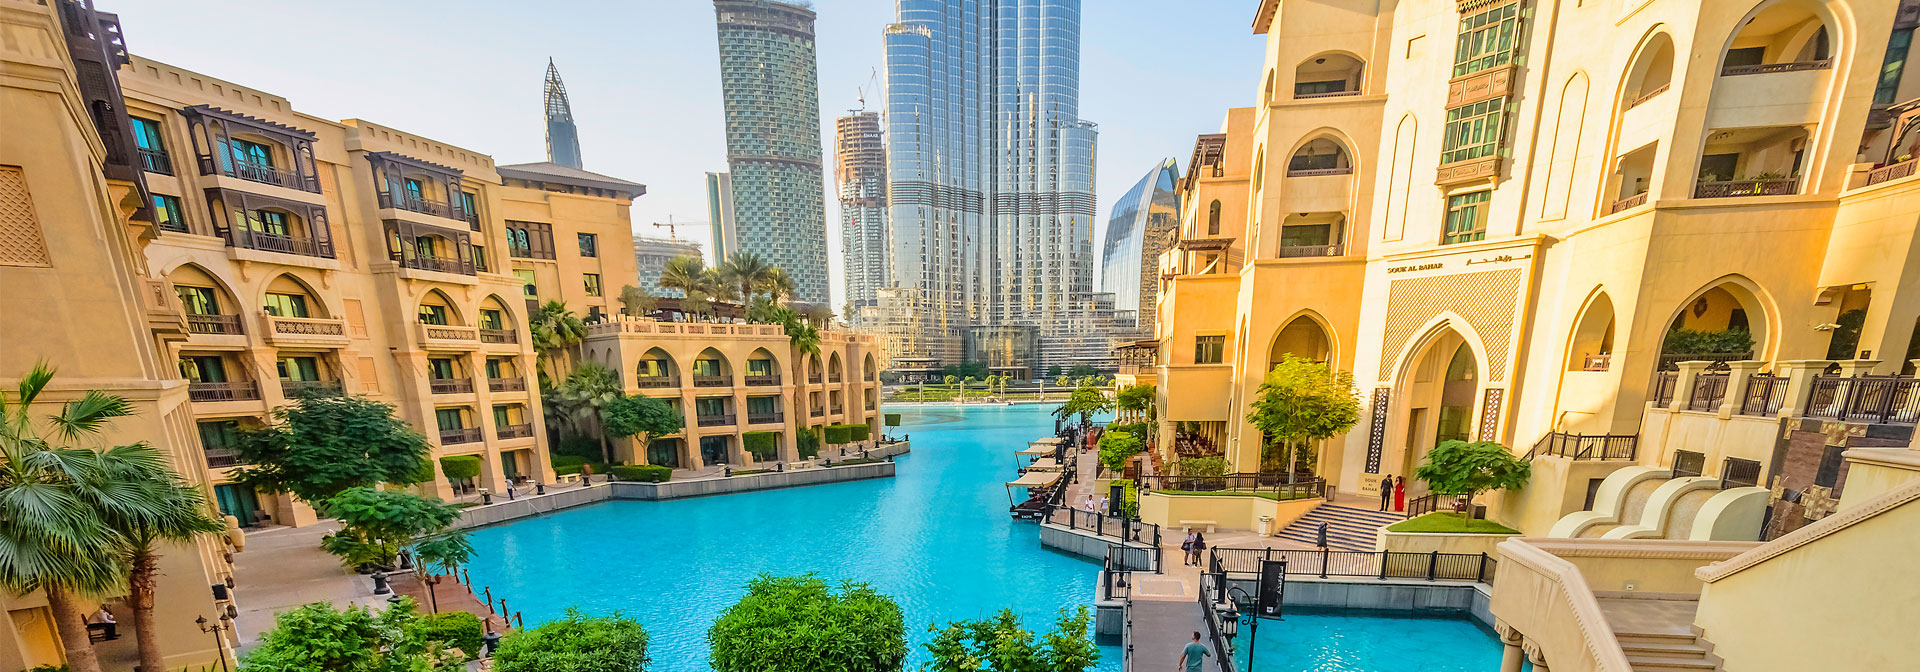 Residential Guide | CORE Real Estate Dubai